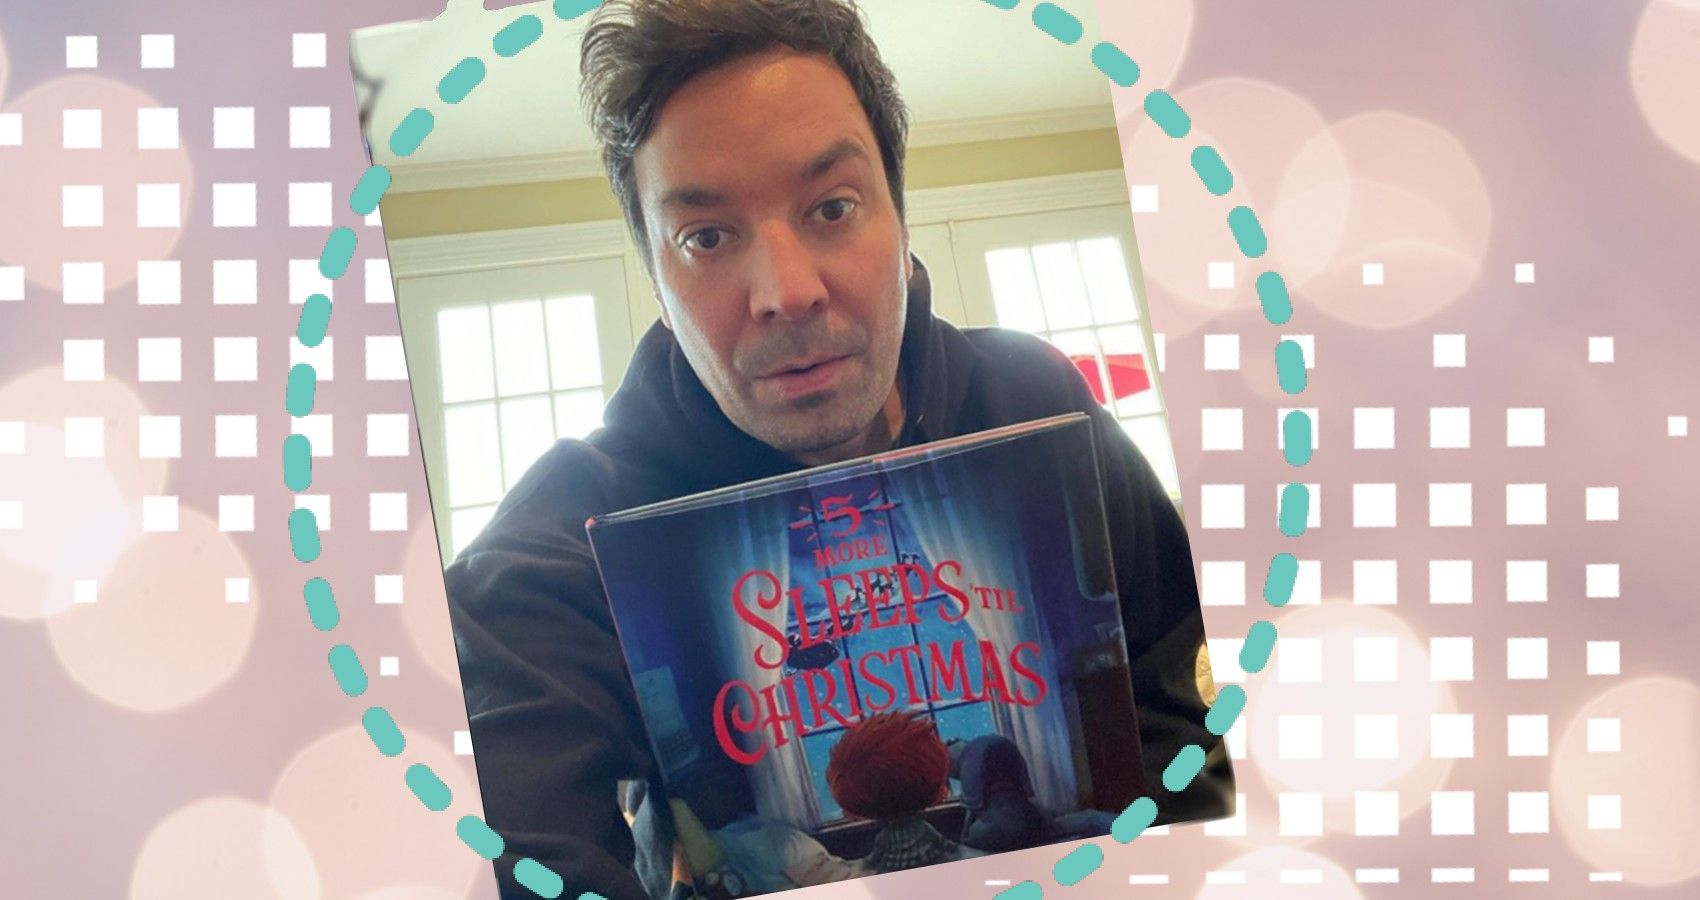 Jimmy Fallon Channels His Love Of Christmas Into A Children's Book